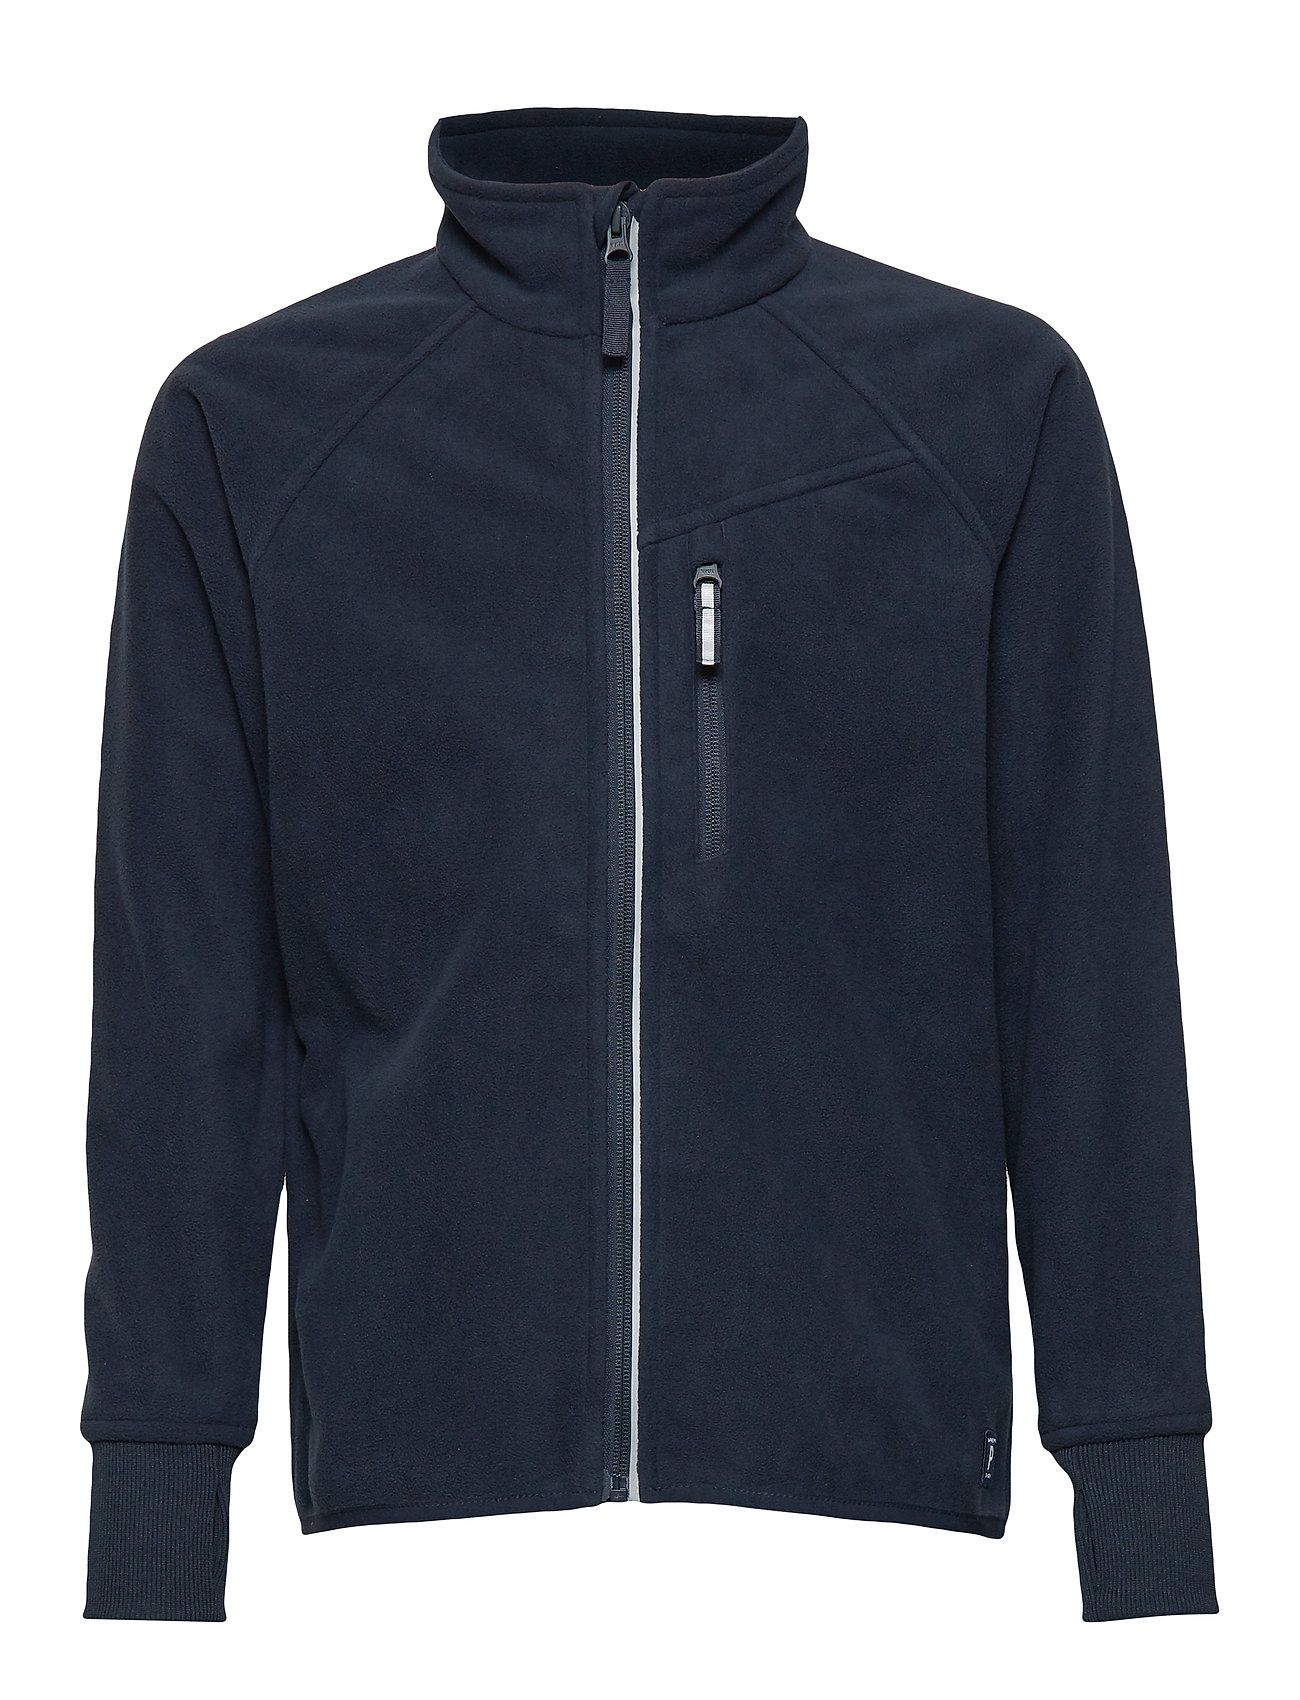 Polarn O. Pyret Windproof Fleece Jacket